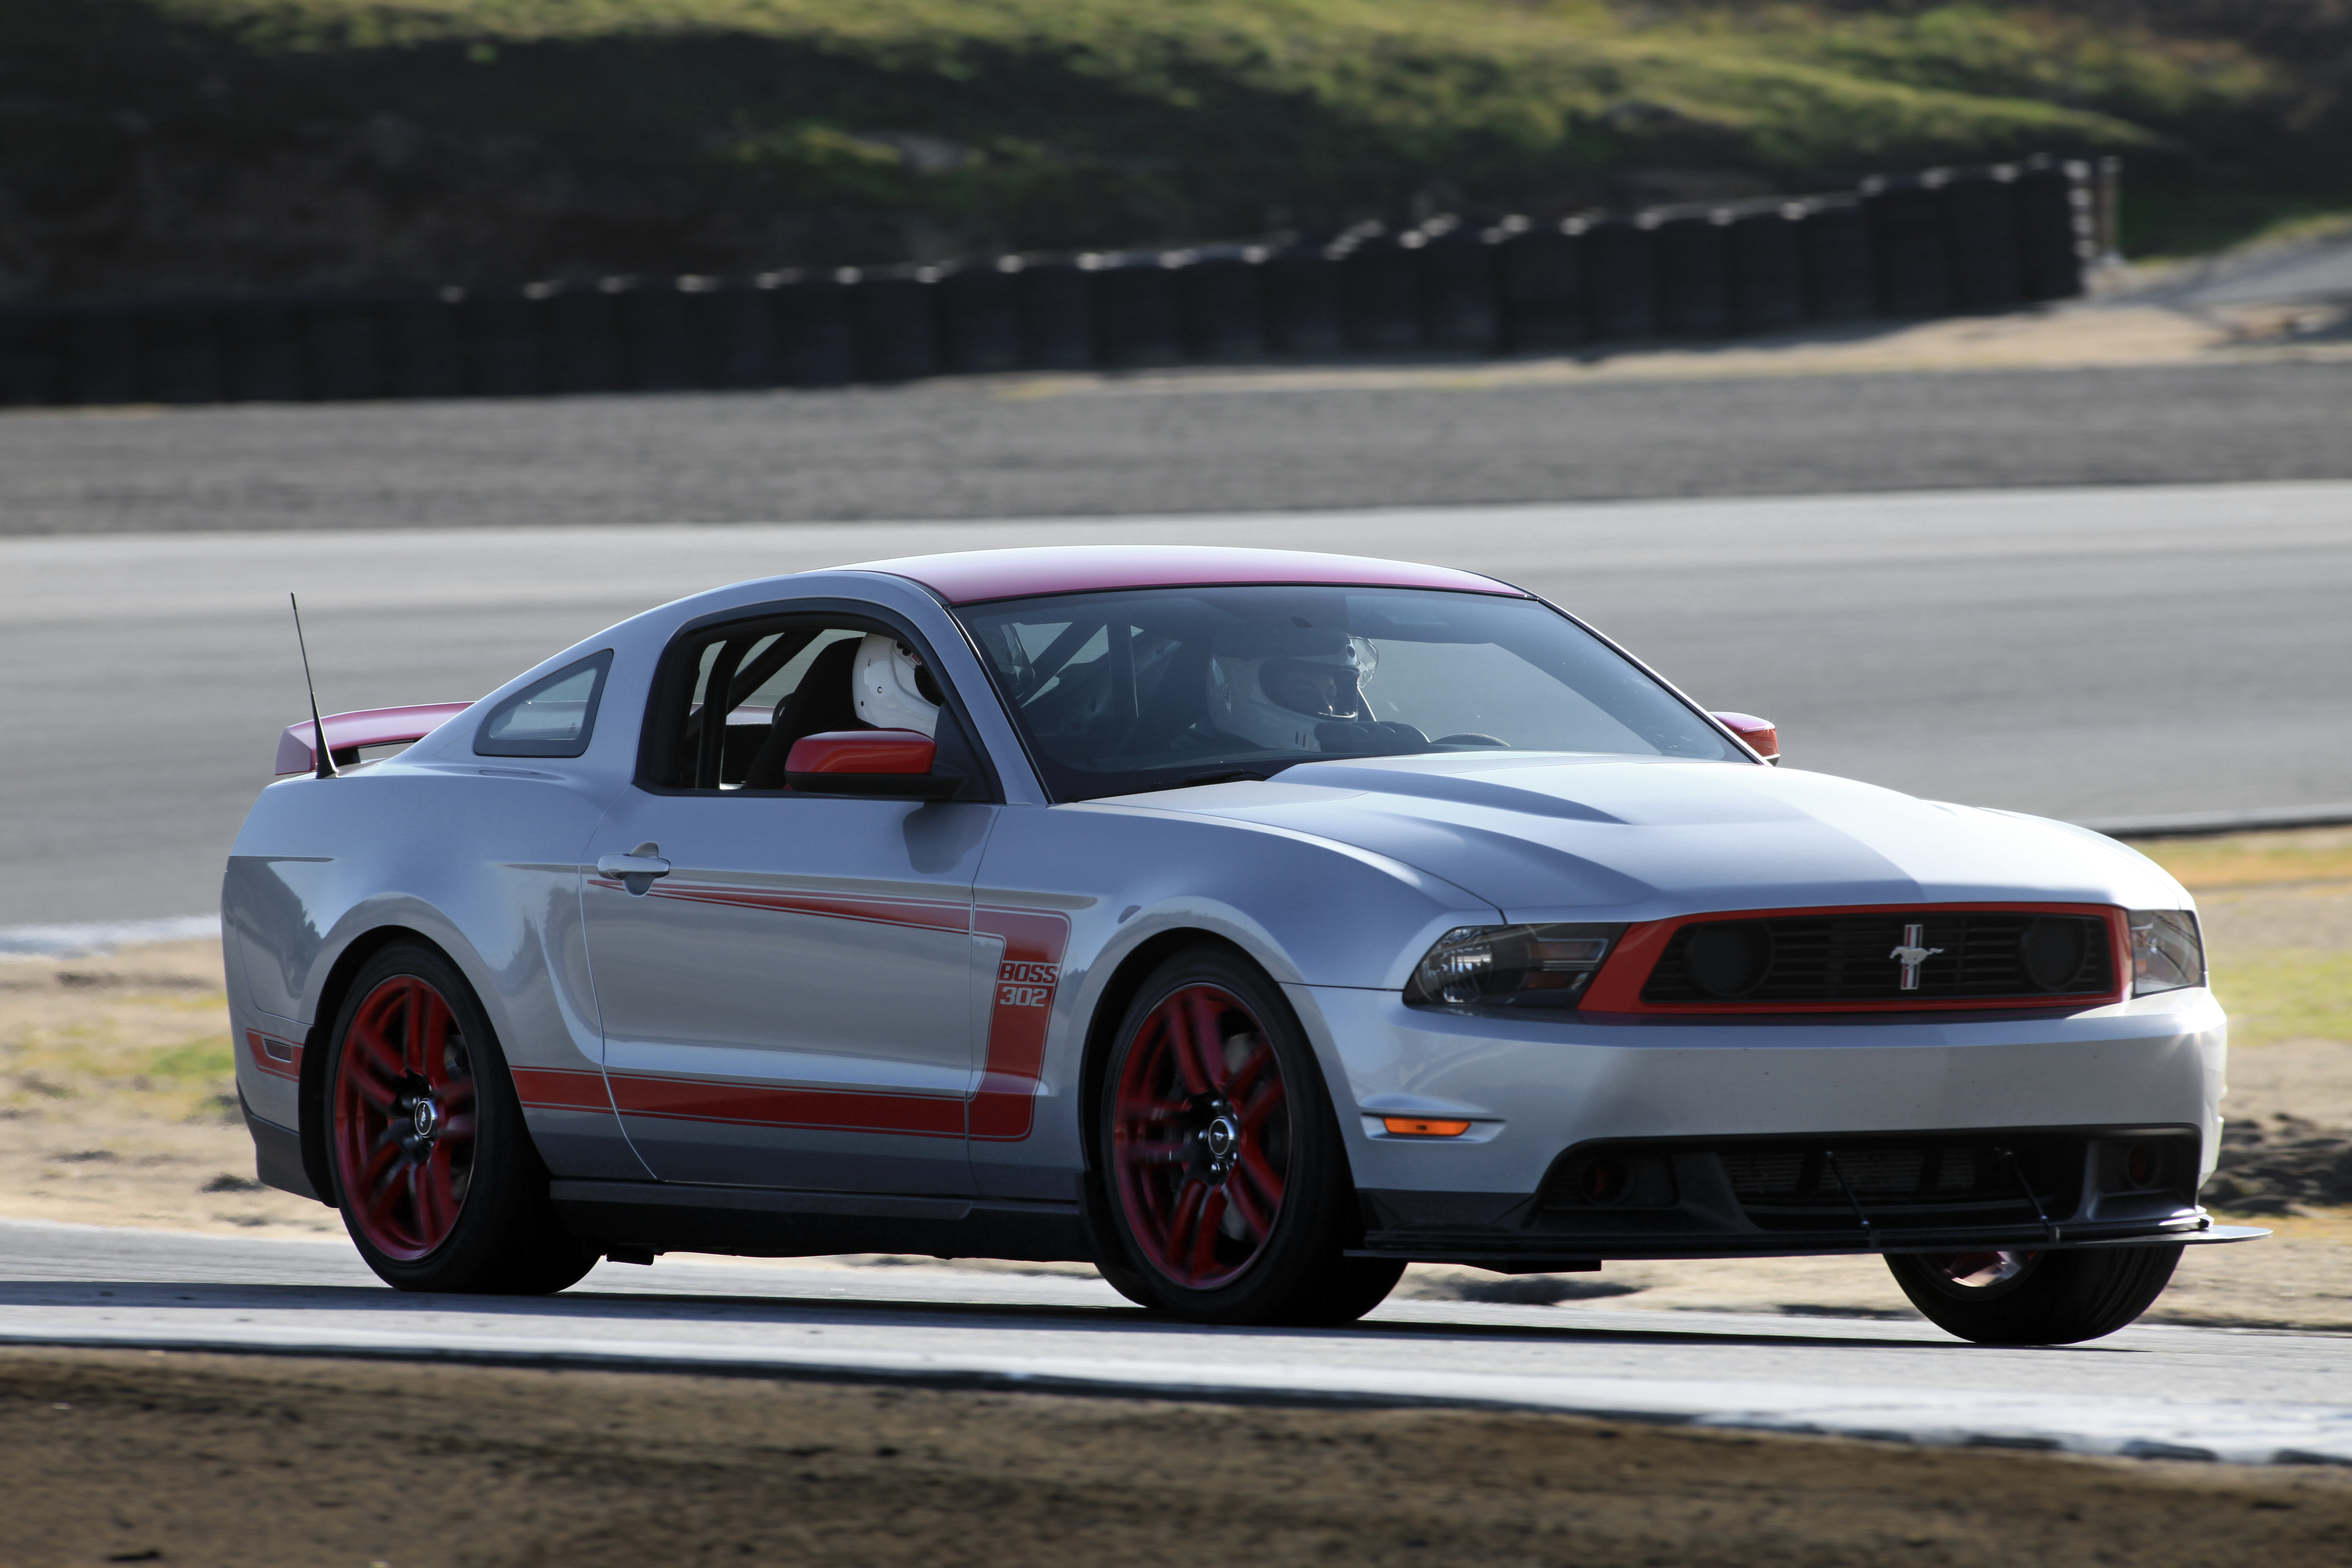 2012 ford mustang boss 302 for sale cargurus autos post. Black Bedroom Furniture Sets. Home Design Ideas